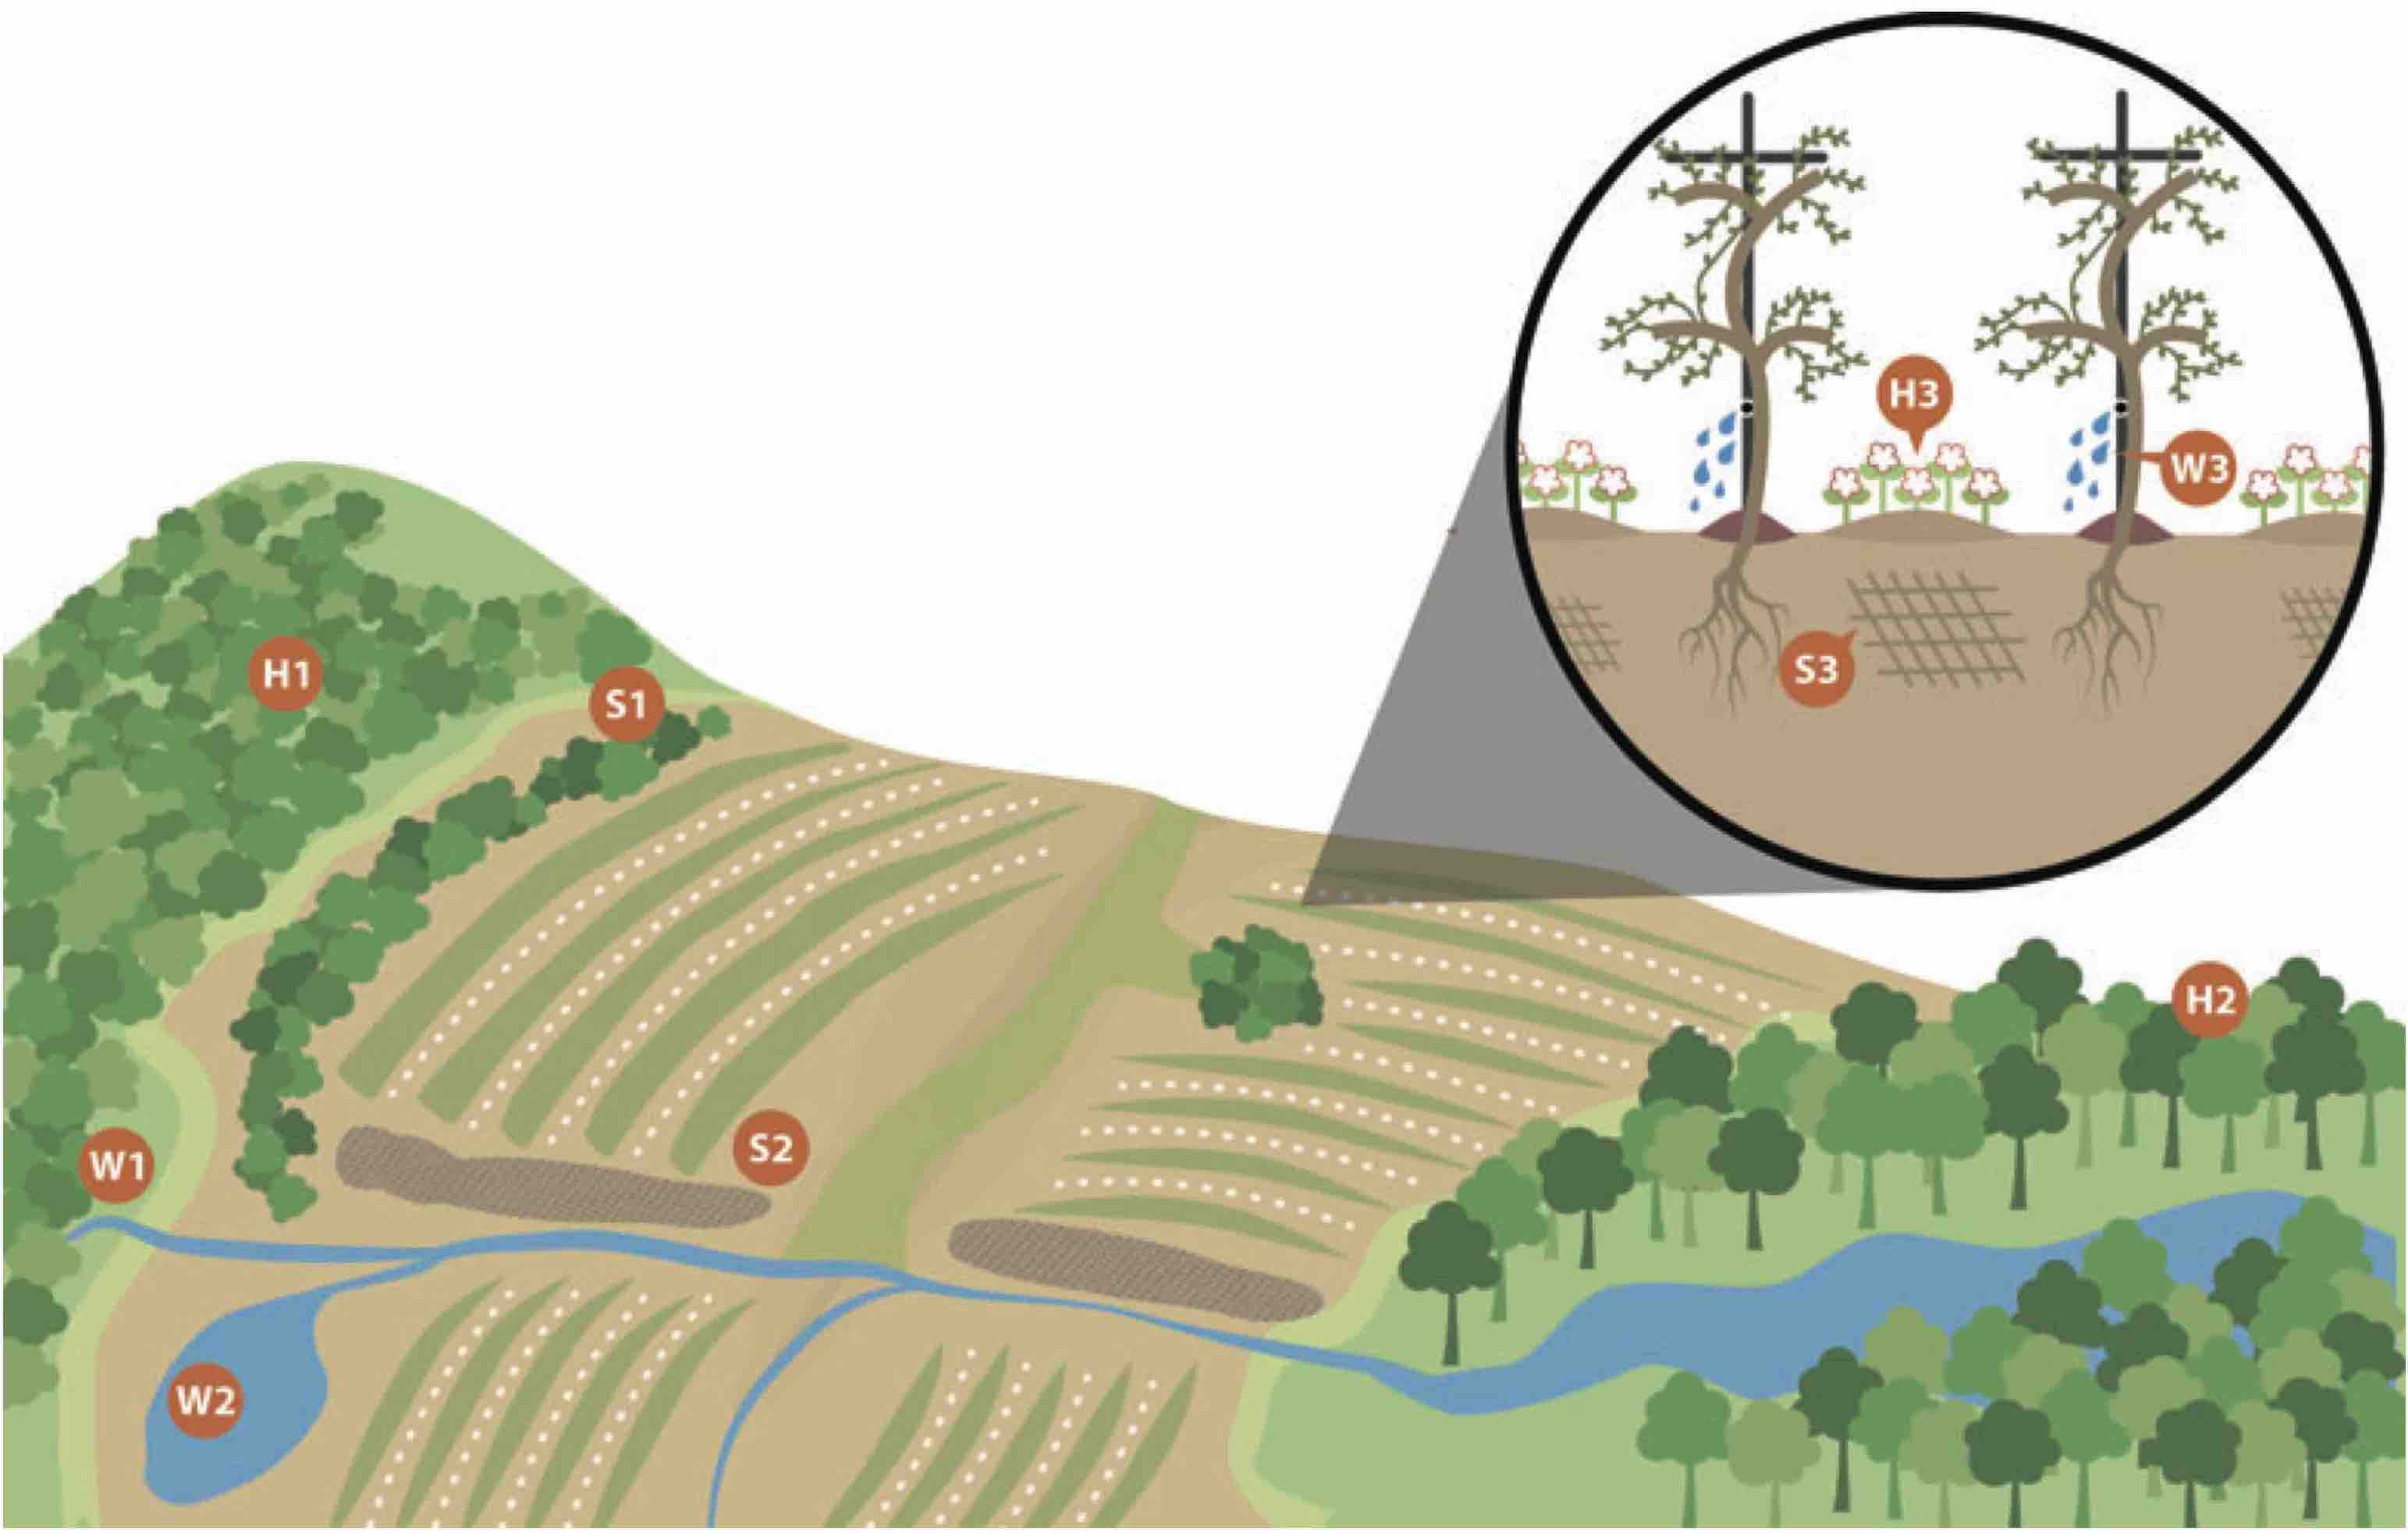 Diagram of a working ecologically sustainable vineyard landscape with a mosaic of agriculture, woodlands and riparian areas.